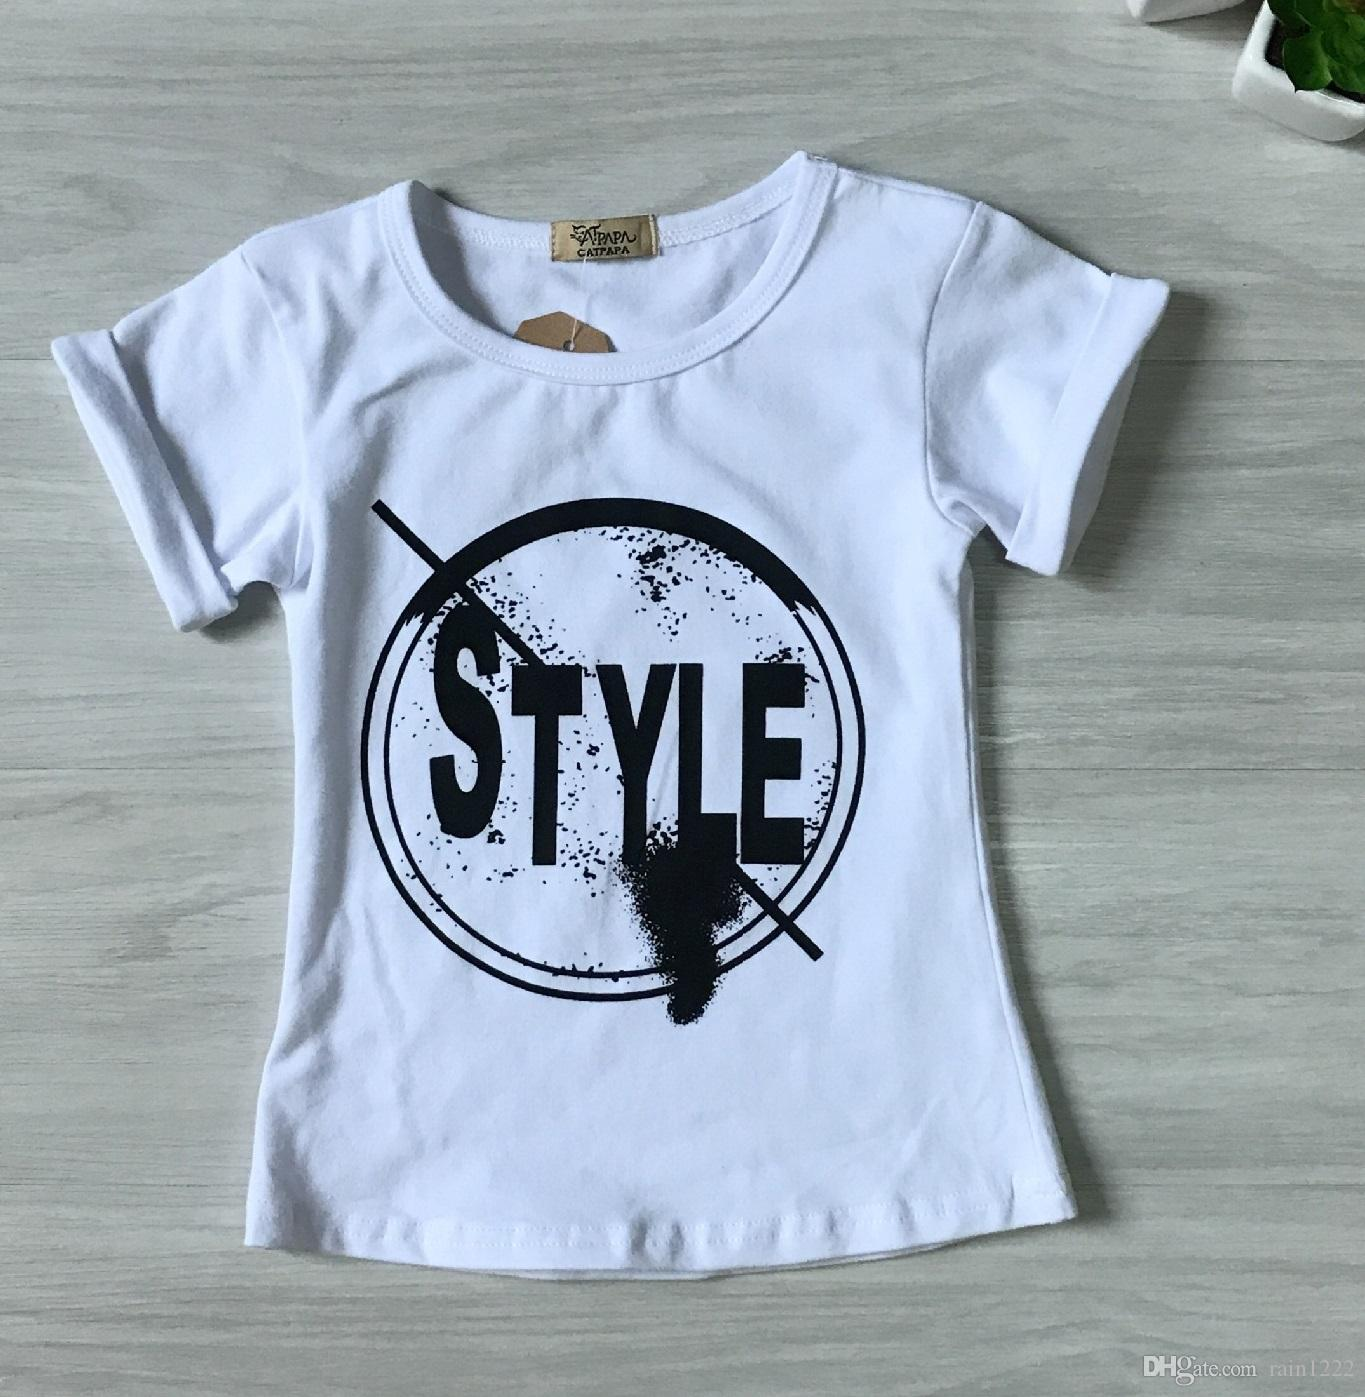 Girls Cotton T-shirts Legging Pants Suits Outfits For 2-7T Children Kids Shorts Sleeve Letter Shirts Tees Ripped Pants Trousers Clothing Set